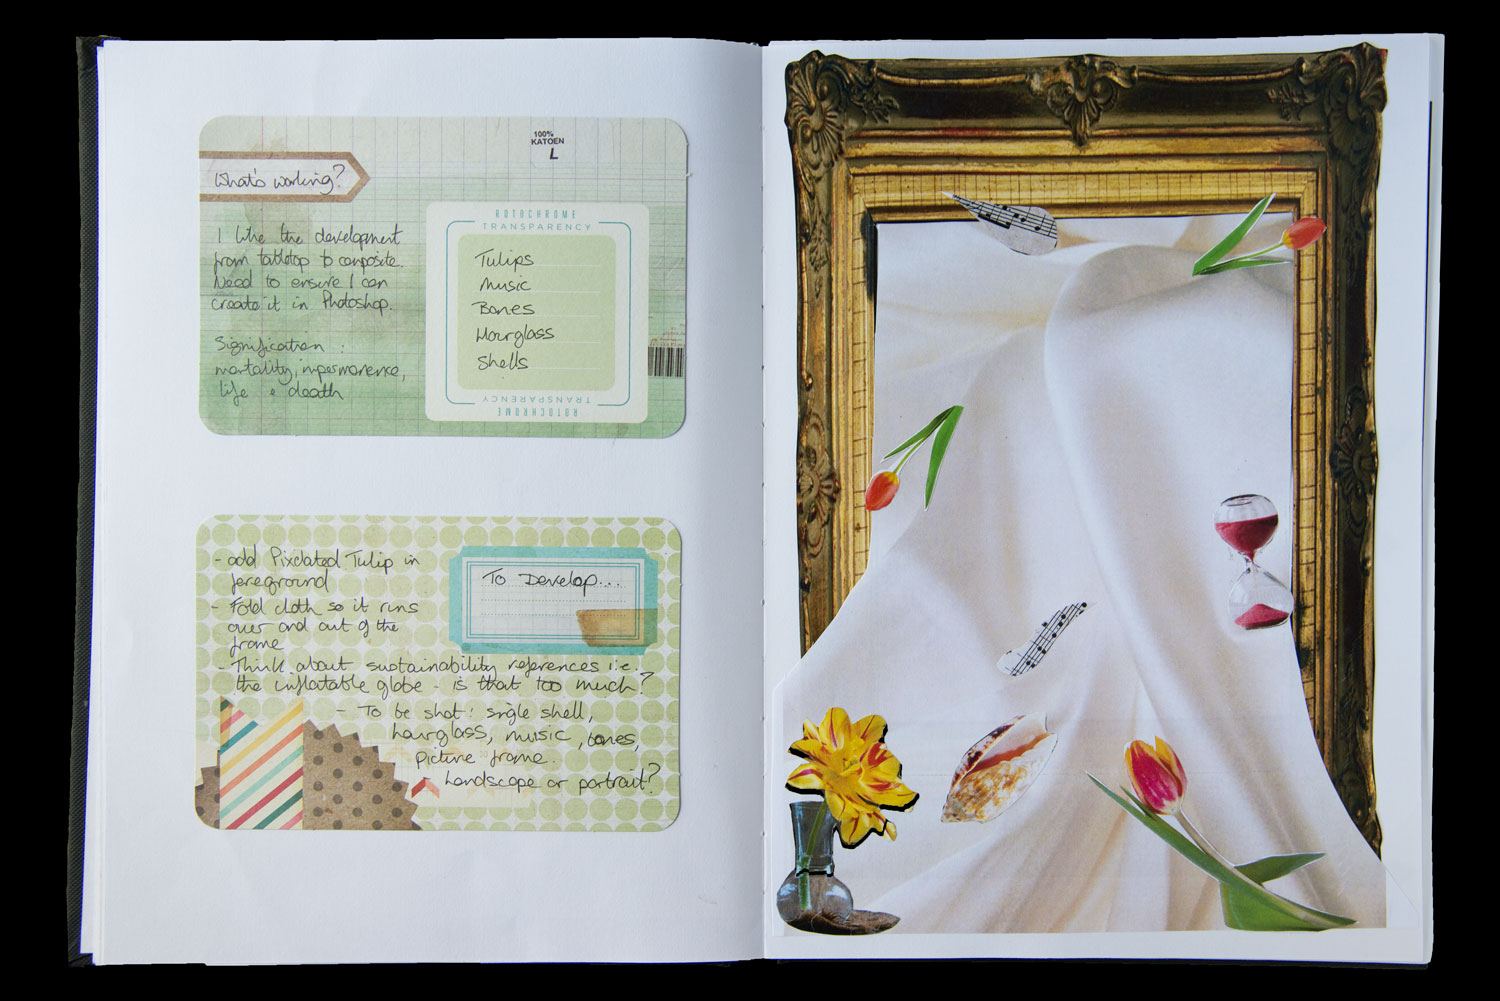 Artists sketchbook with a collage of a frame draped in cloth and objects